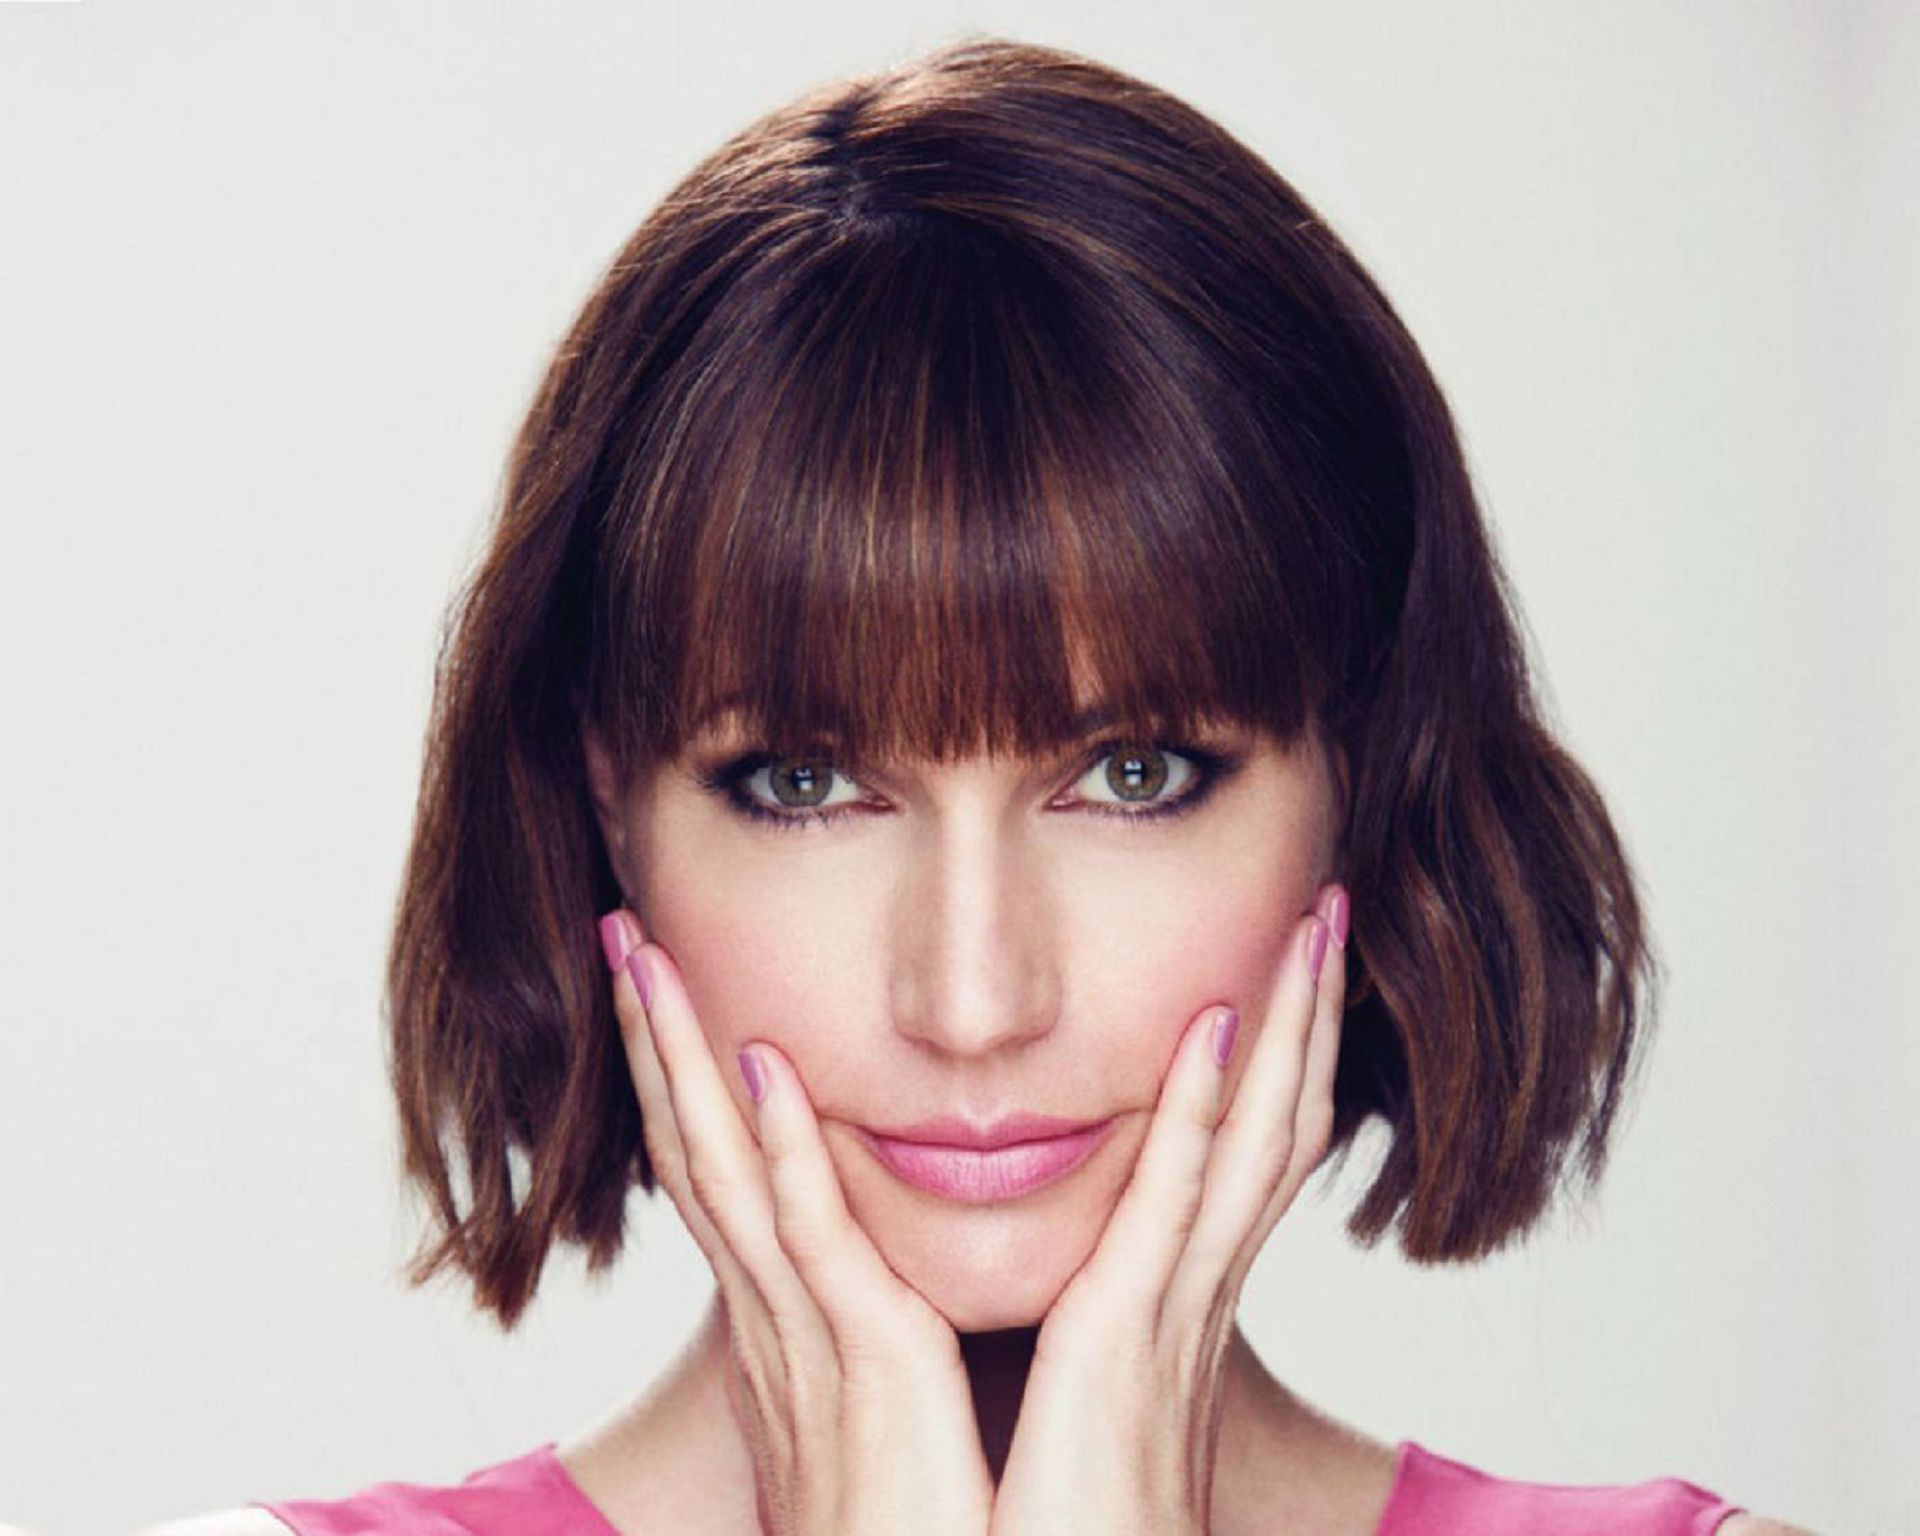 Julie Ann Emery